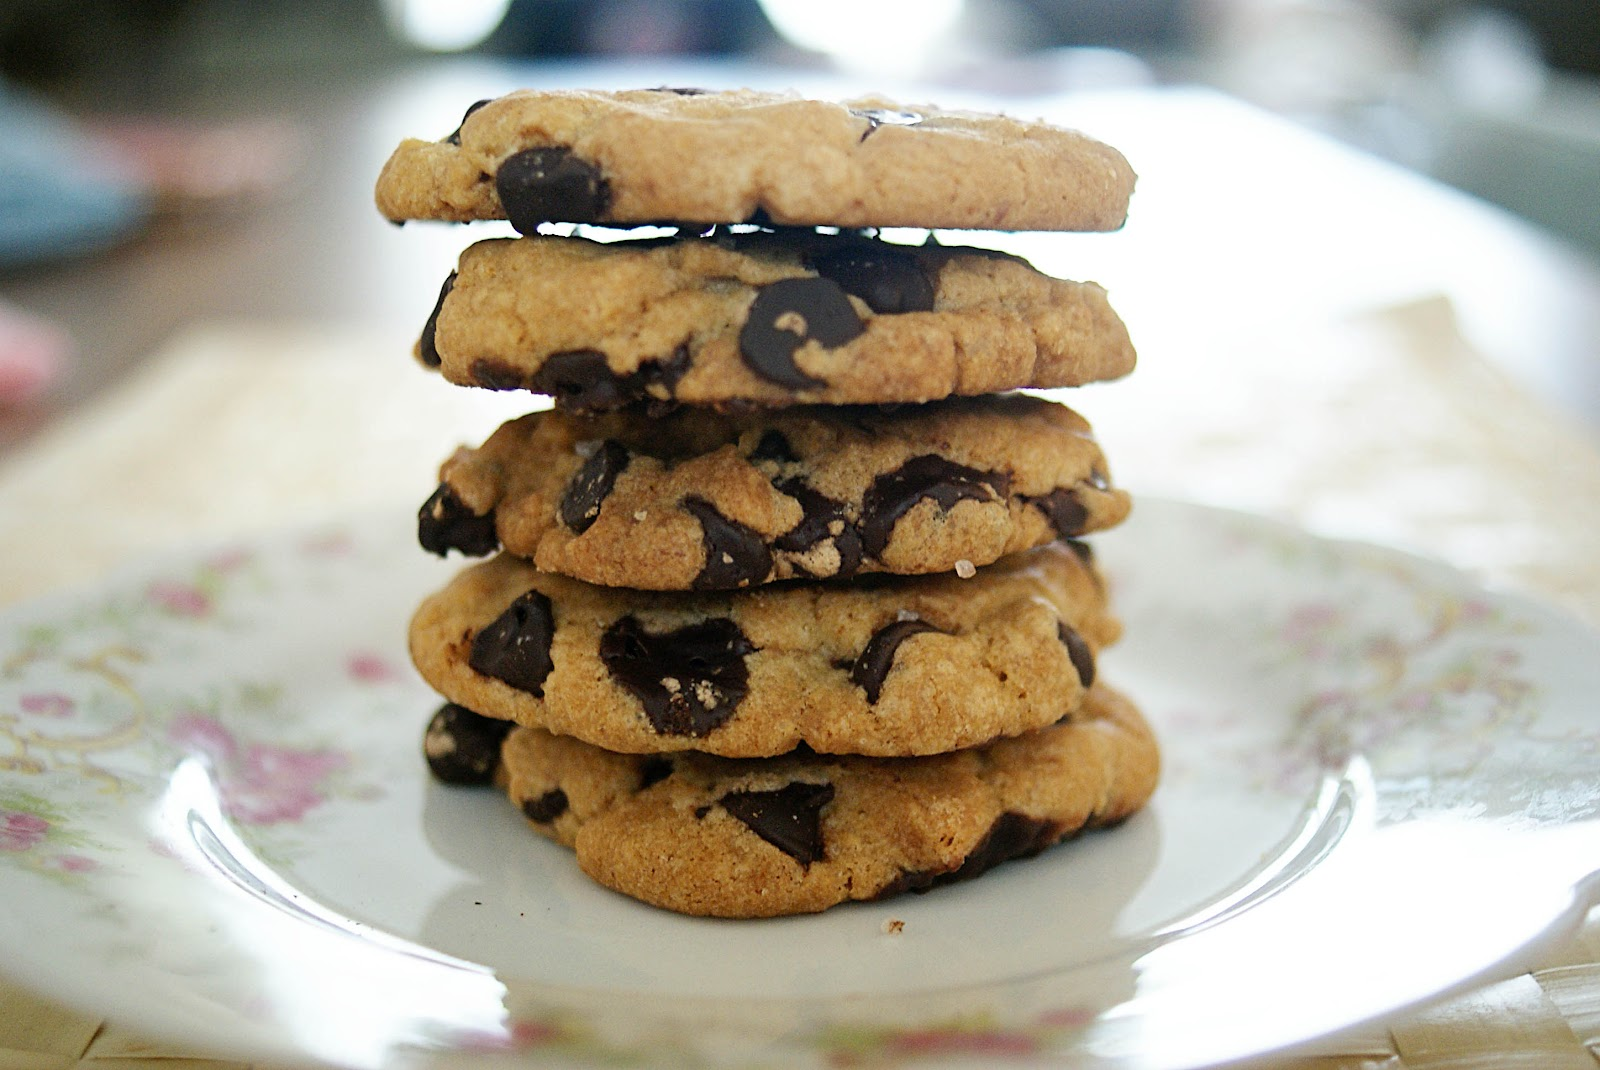 Piccante Dolce: Brown Butter Chocolate Chip Cookies with Sea Salt